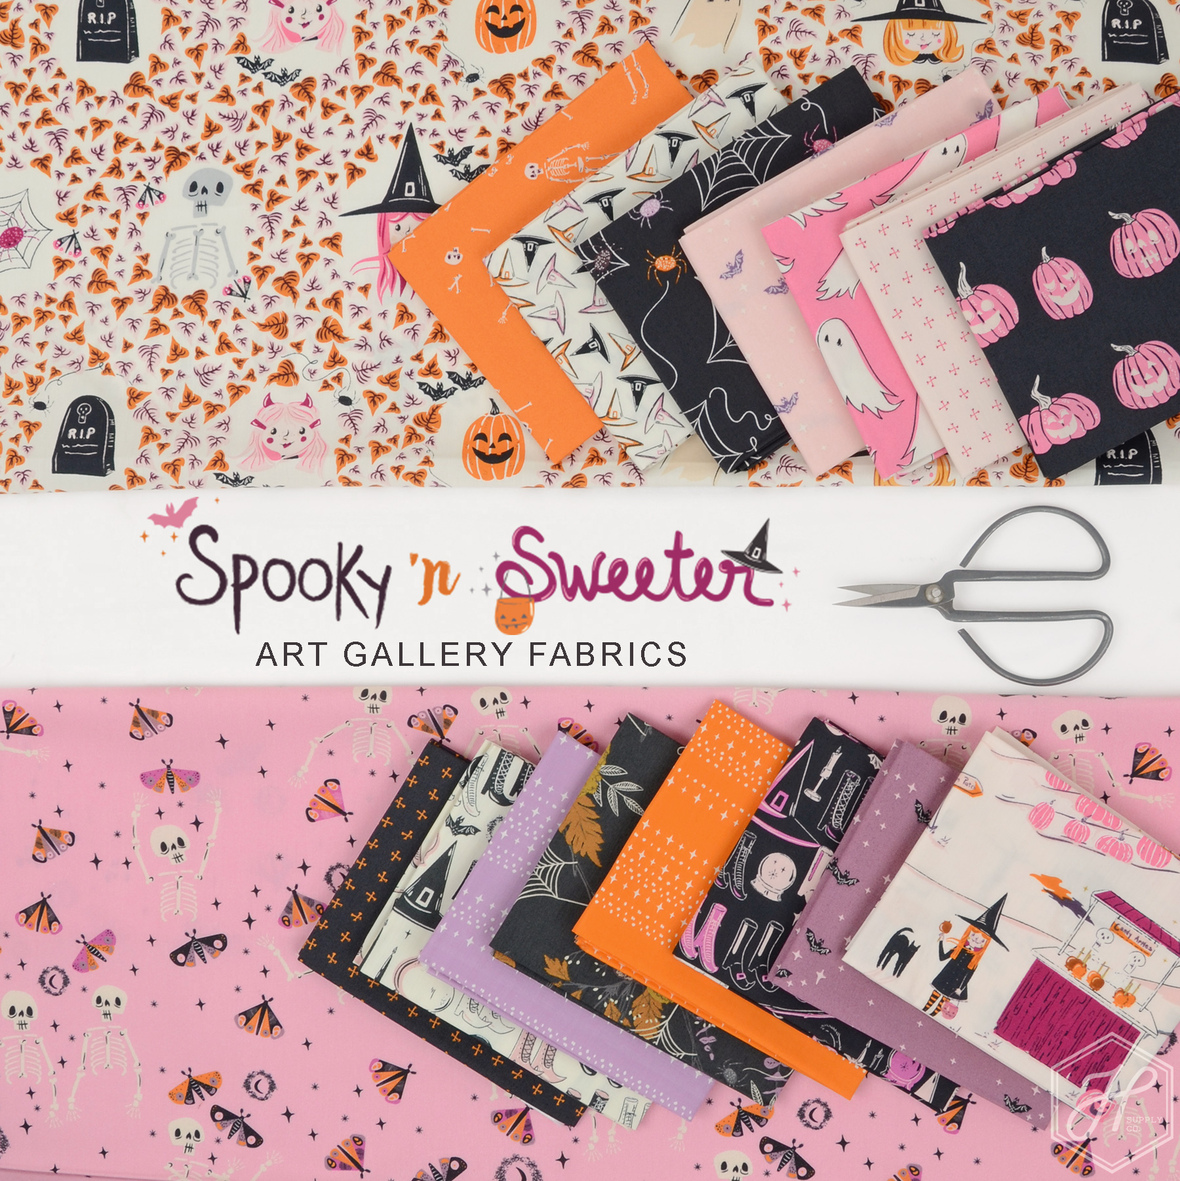 Spooky n Sweet Fabric Art Gallery at Hawthorne Supply Co.